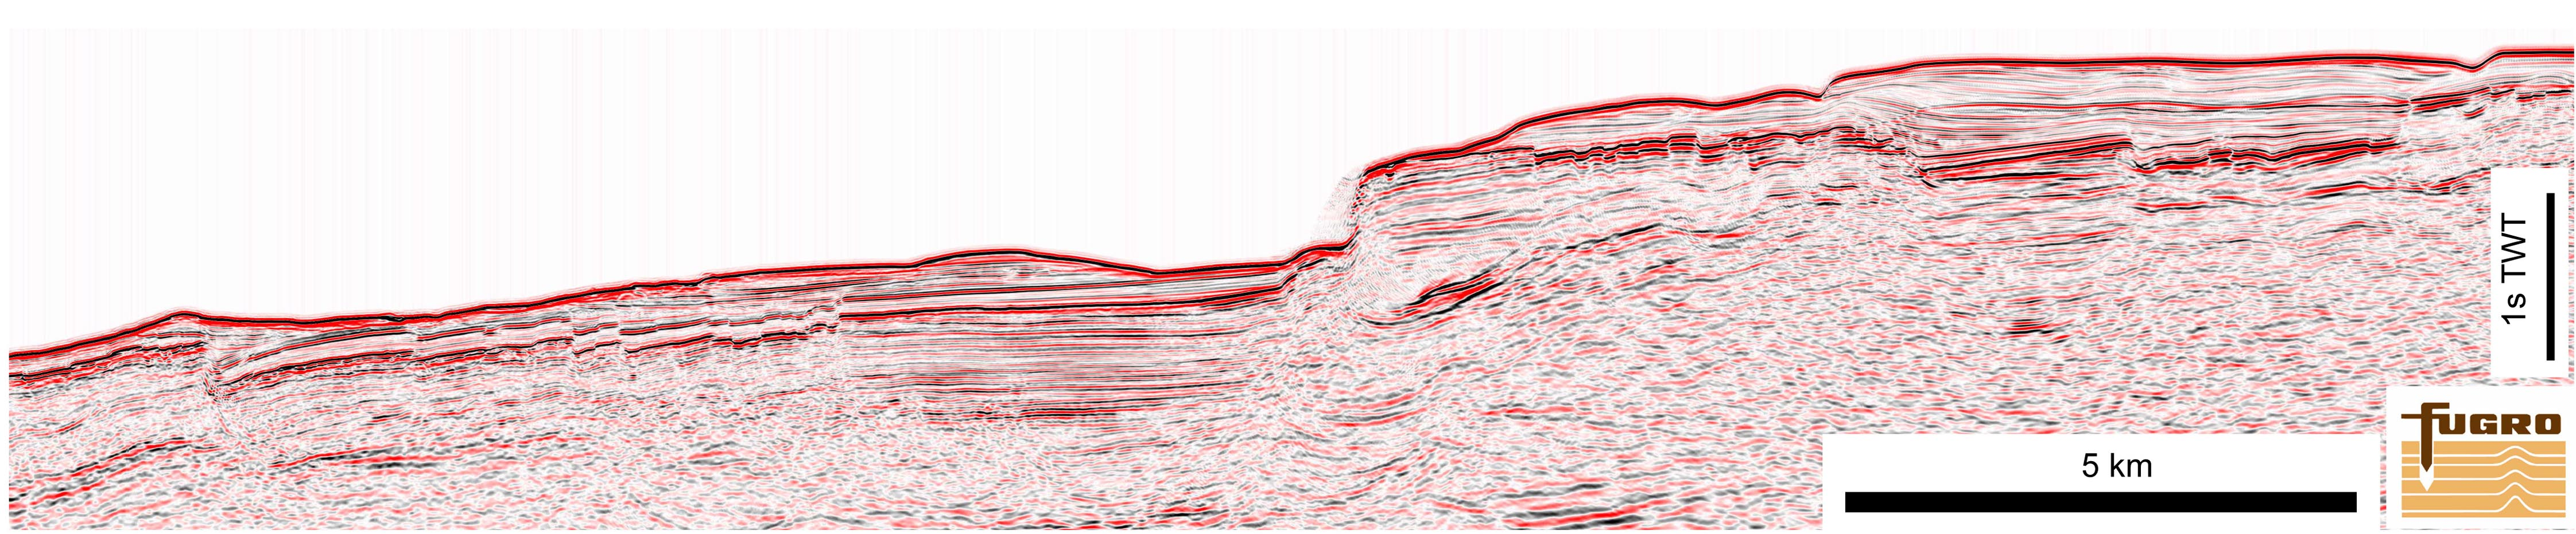 Faulted foredeep and outer rise, Calabrian trench (credit: Rob Butler, seismicatlas.org)